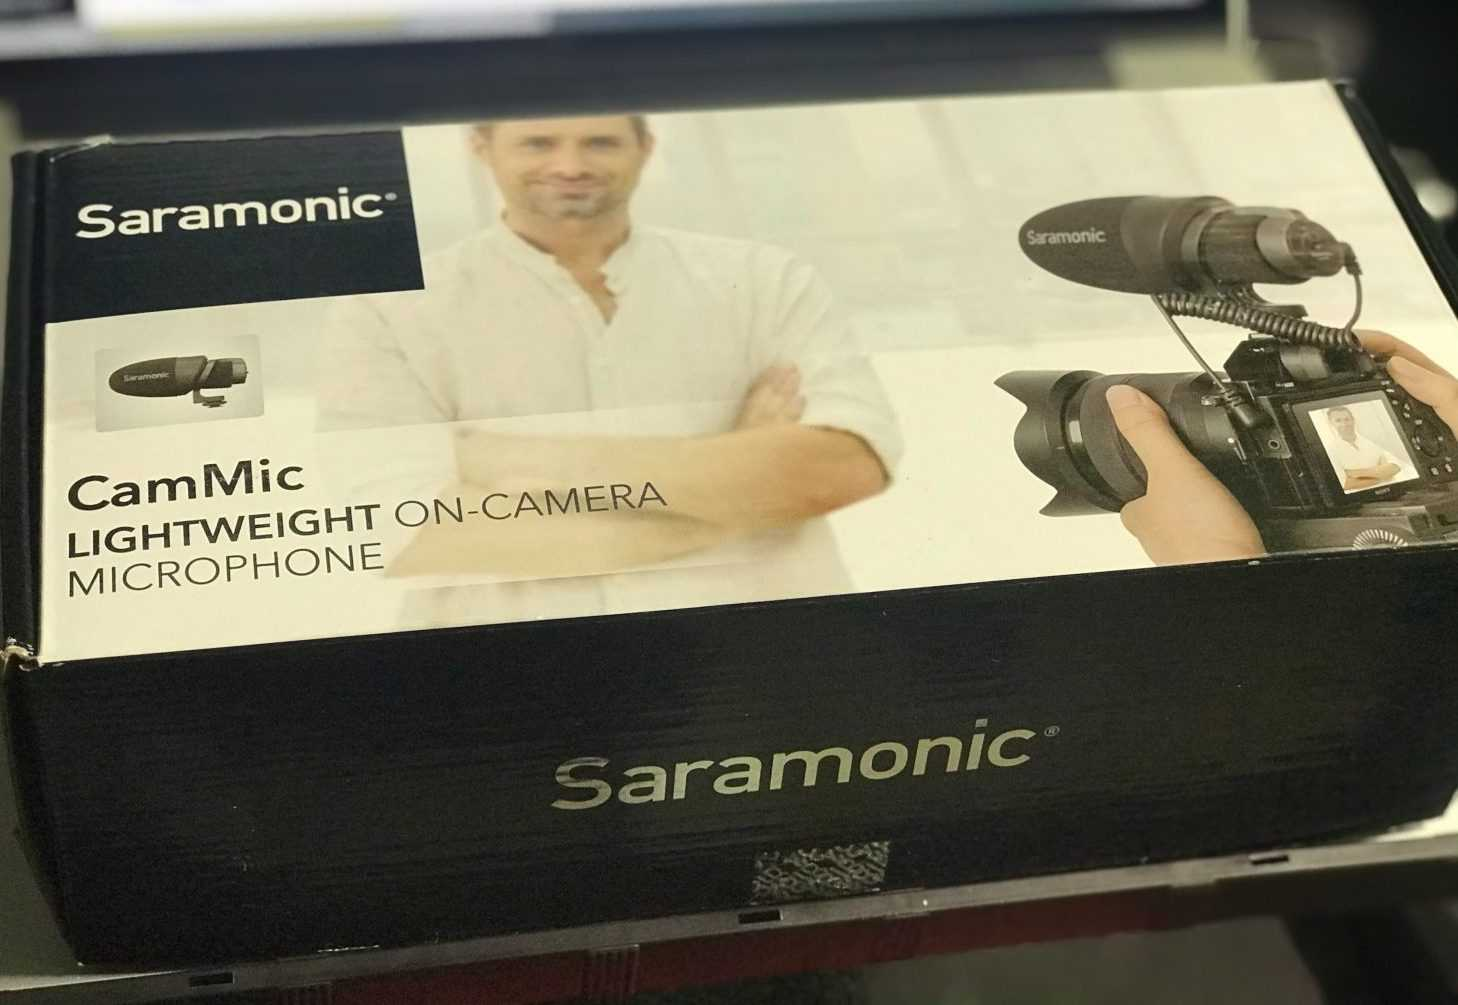 Review: Saramonic CamMic